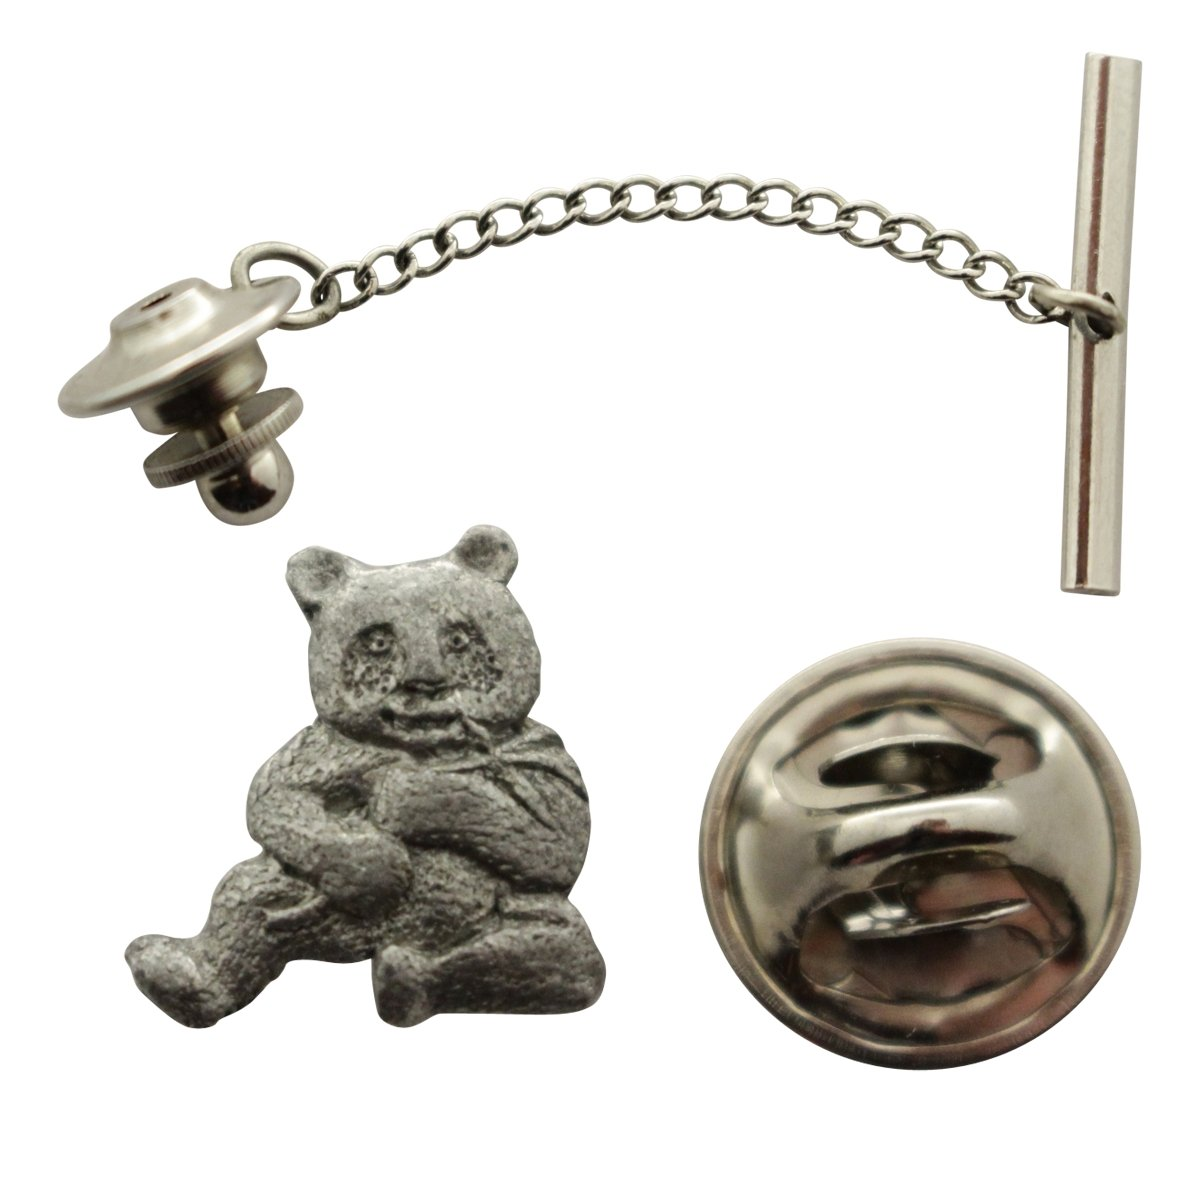 Panda Tie Tack ~ Antiqued Pewter ~ Tie Tack or Pin ~ Sarah's Treats & Treasures G.G. Harris STT-M496-TT